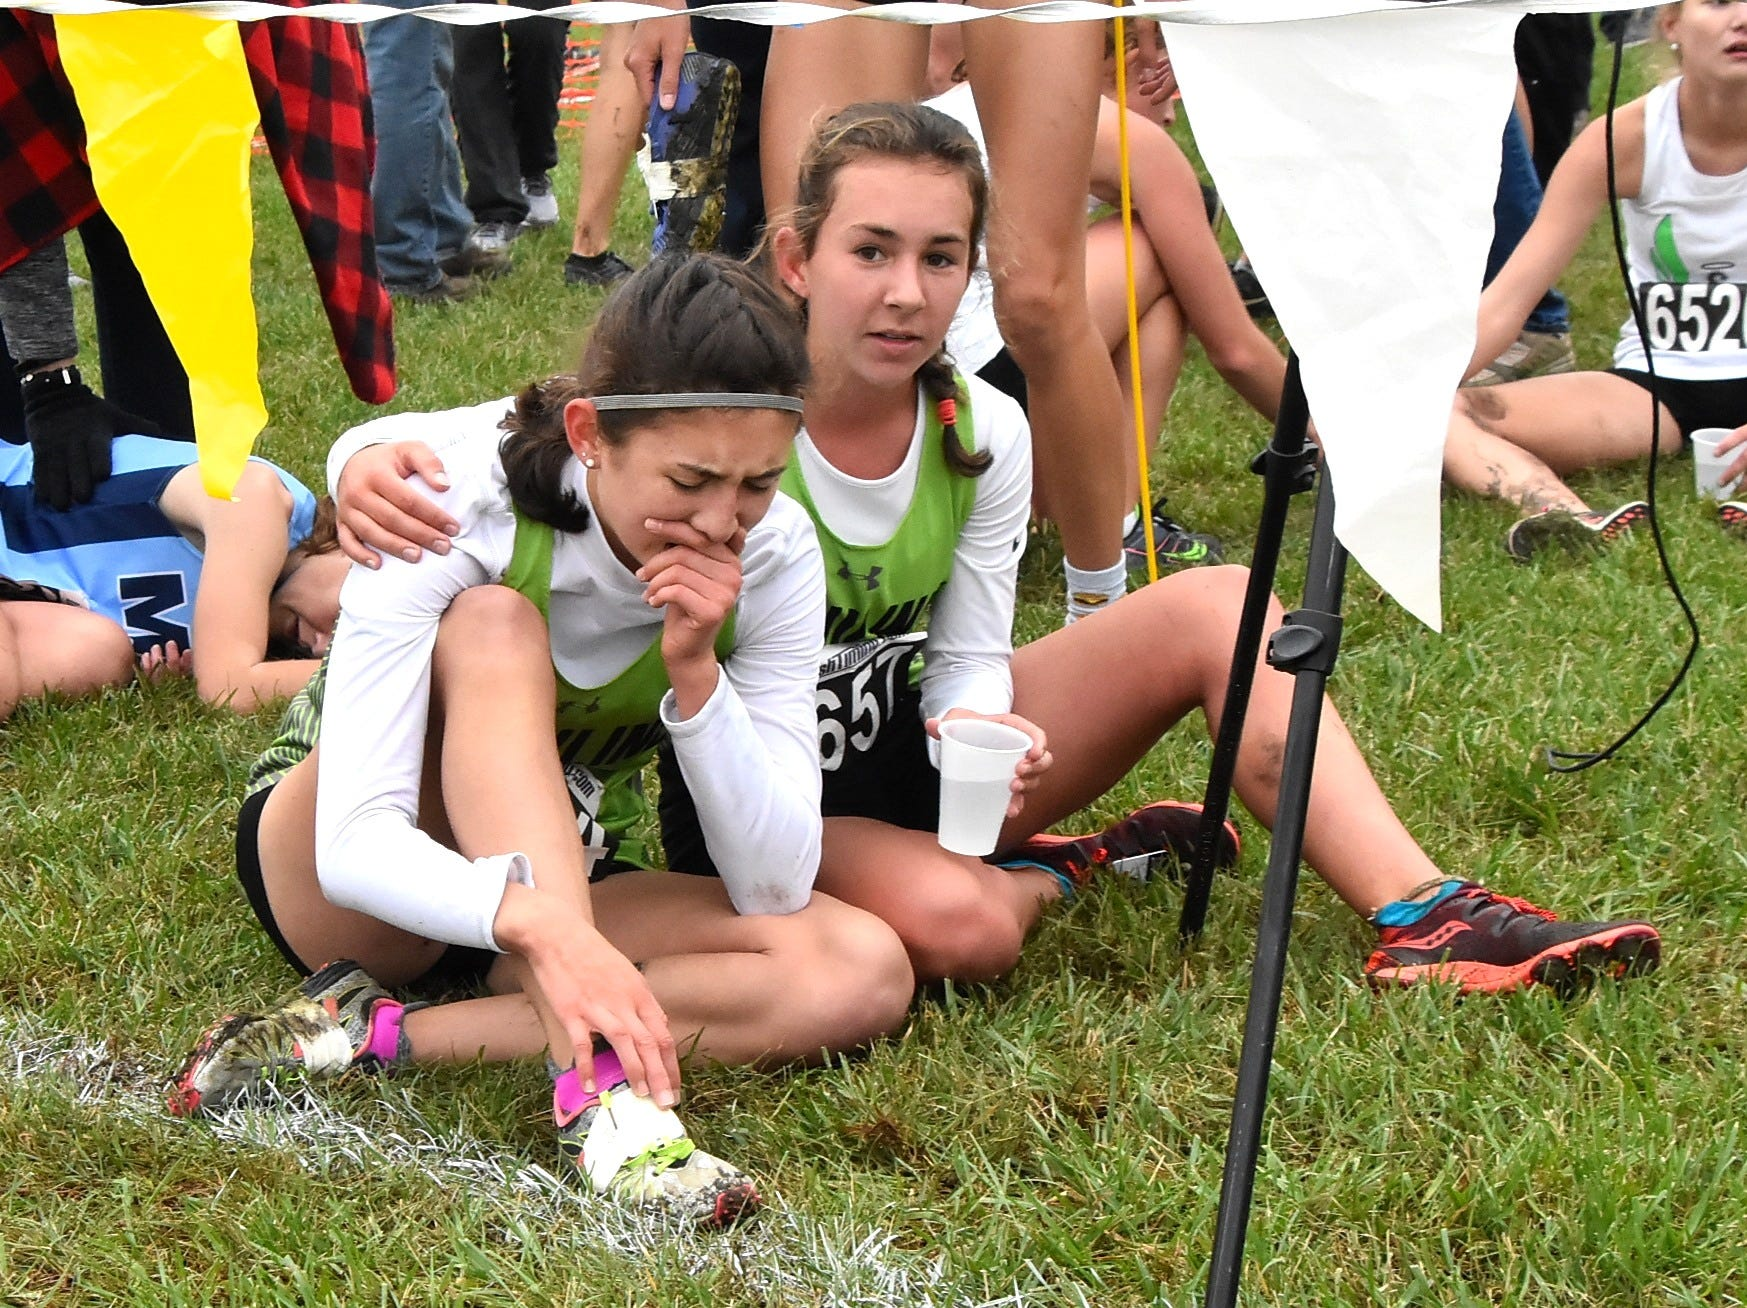 Ursuline runners share a moment of consolation after running at the 2018 GCL/GGCL Cross Country Championships, October 13, 2018.